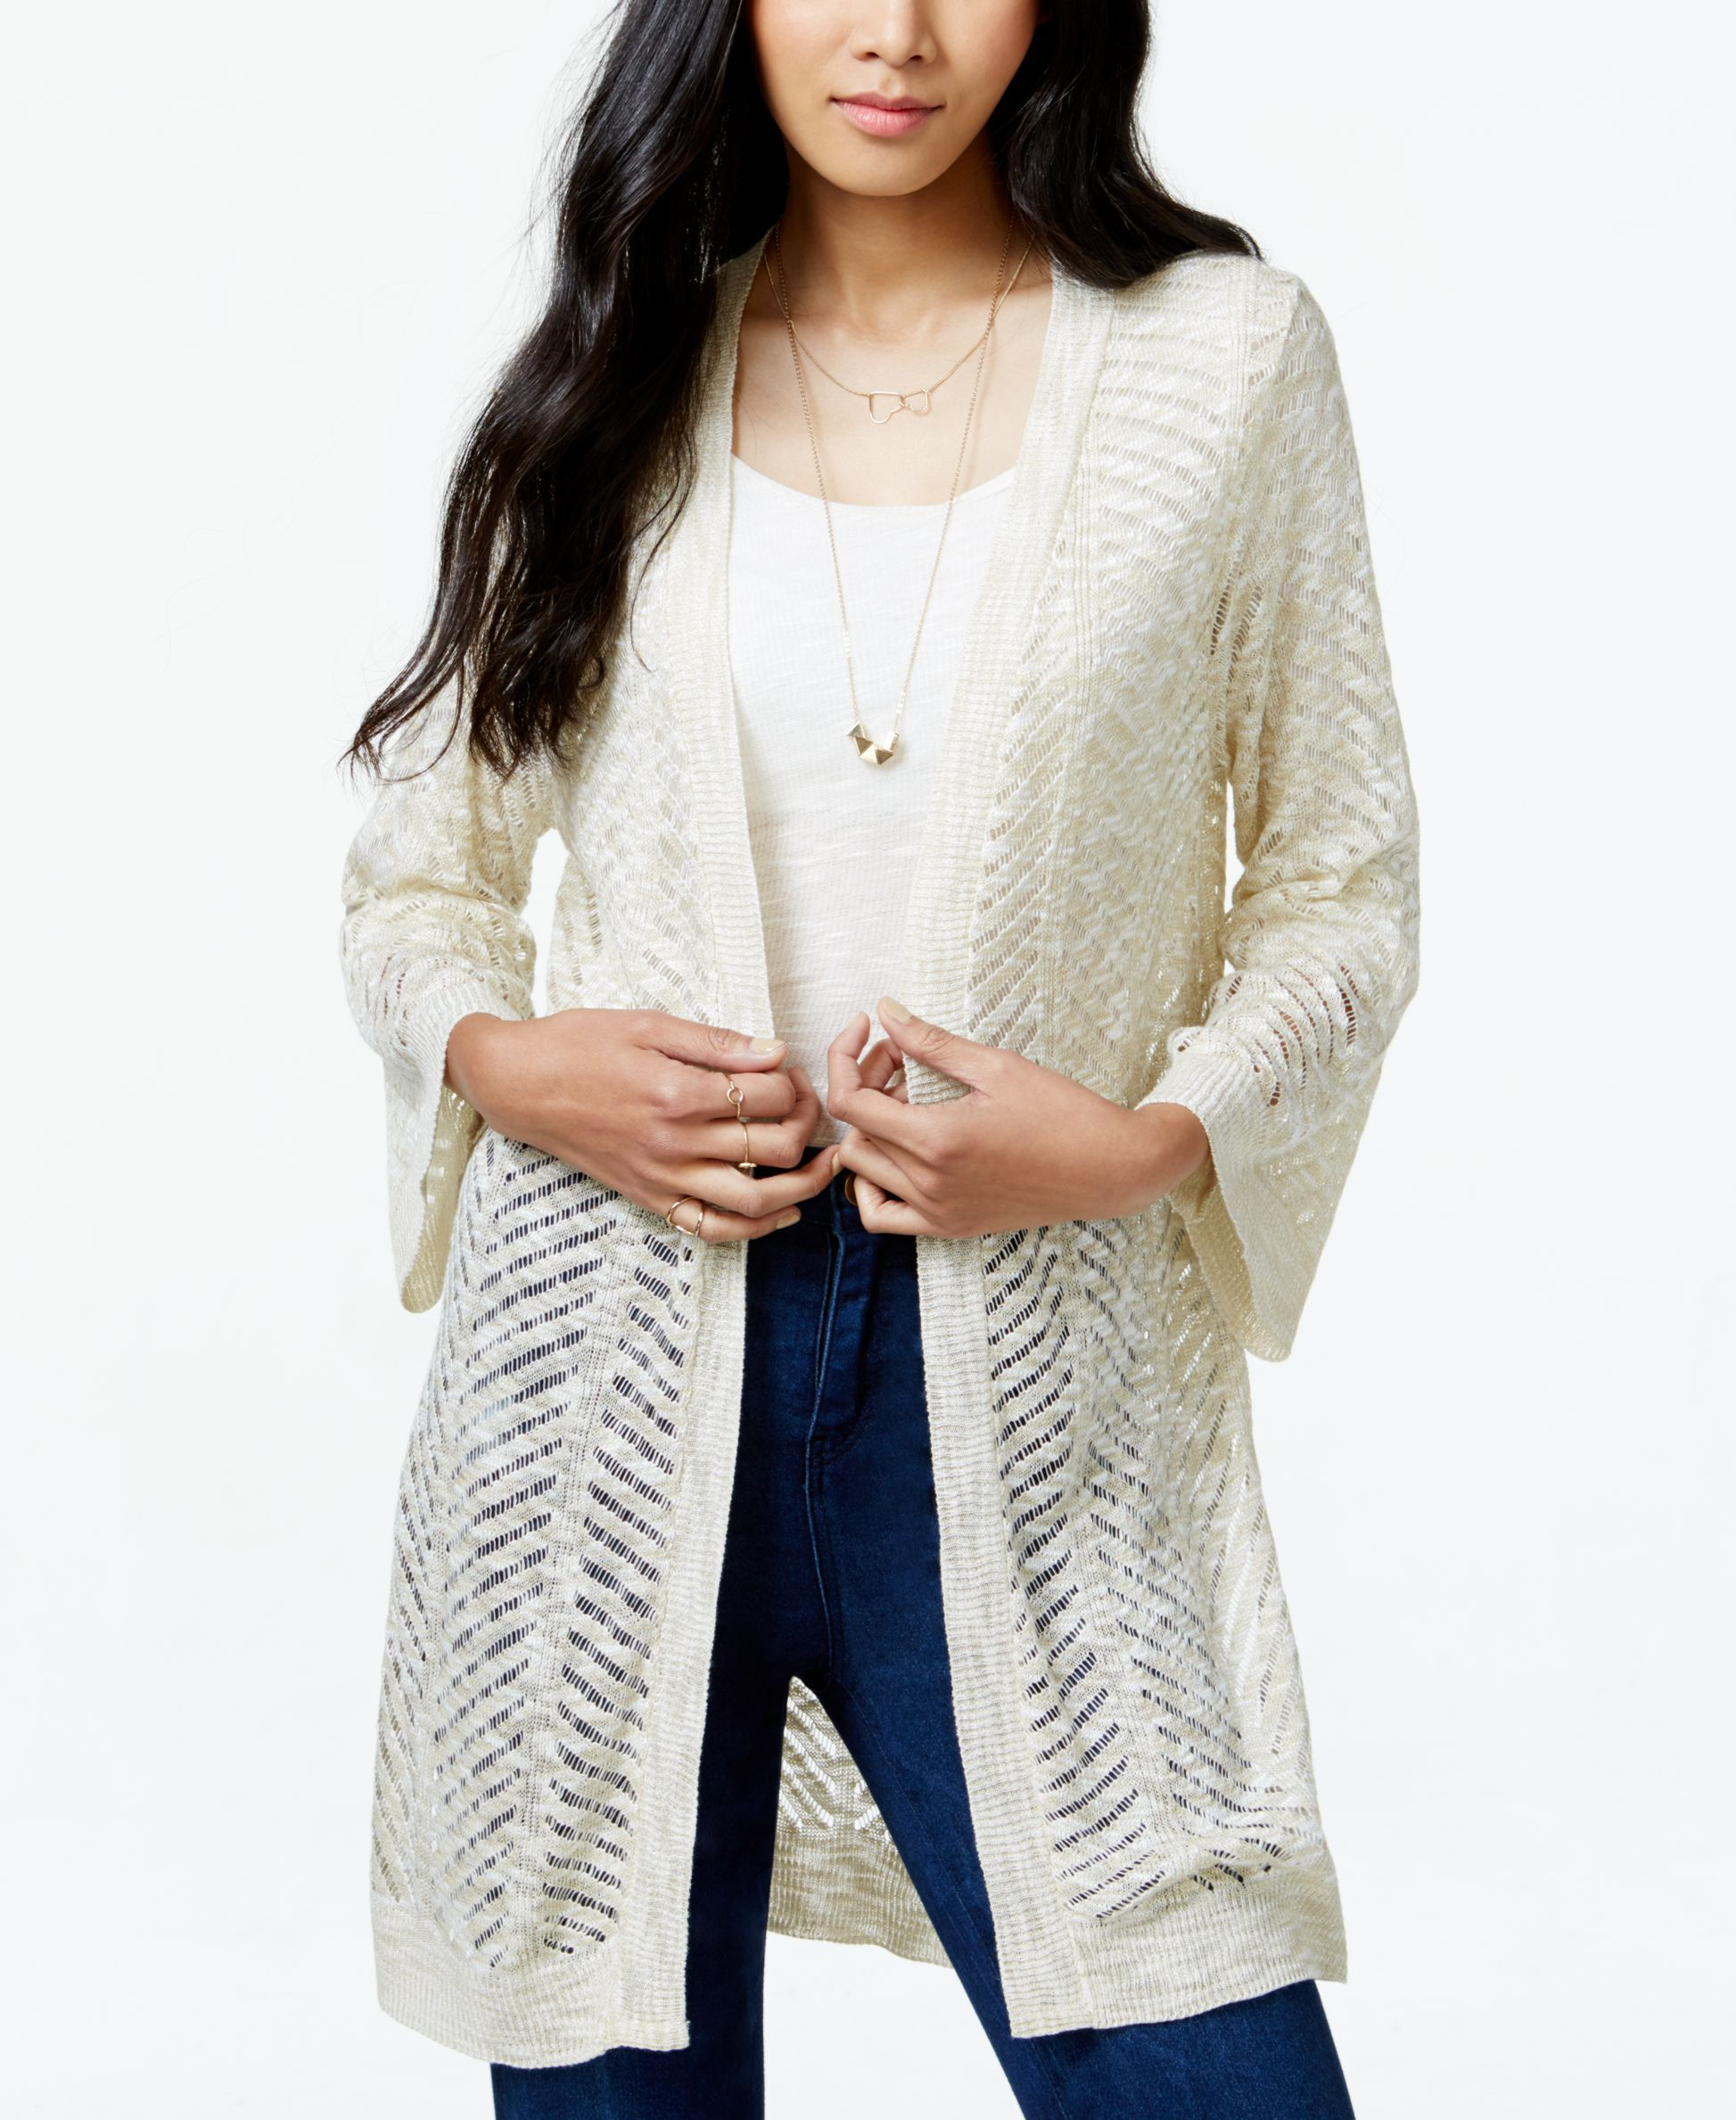 Cotton Emporium Juniors' Marled Pointelle-Knit Cardigan Sweater ...